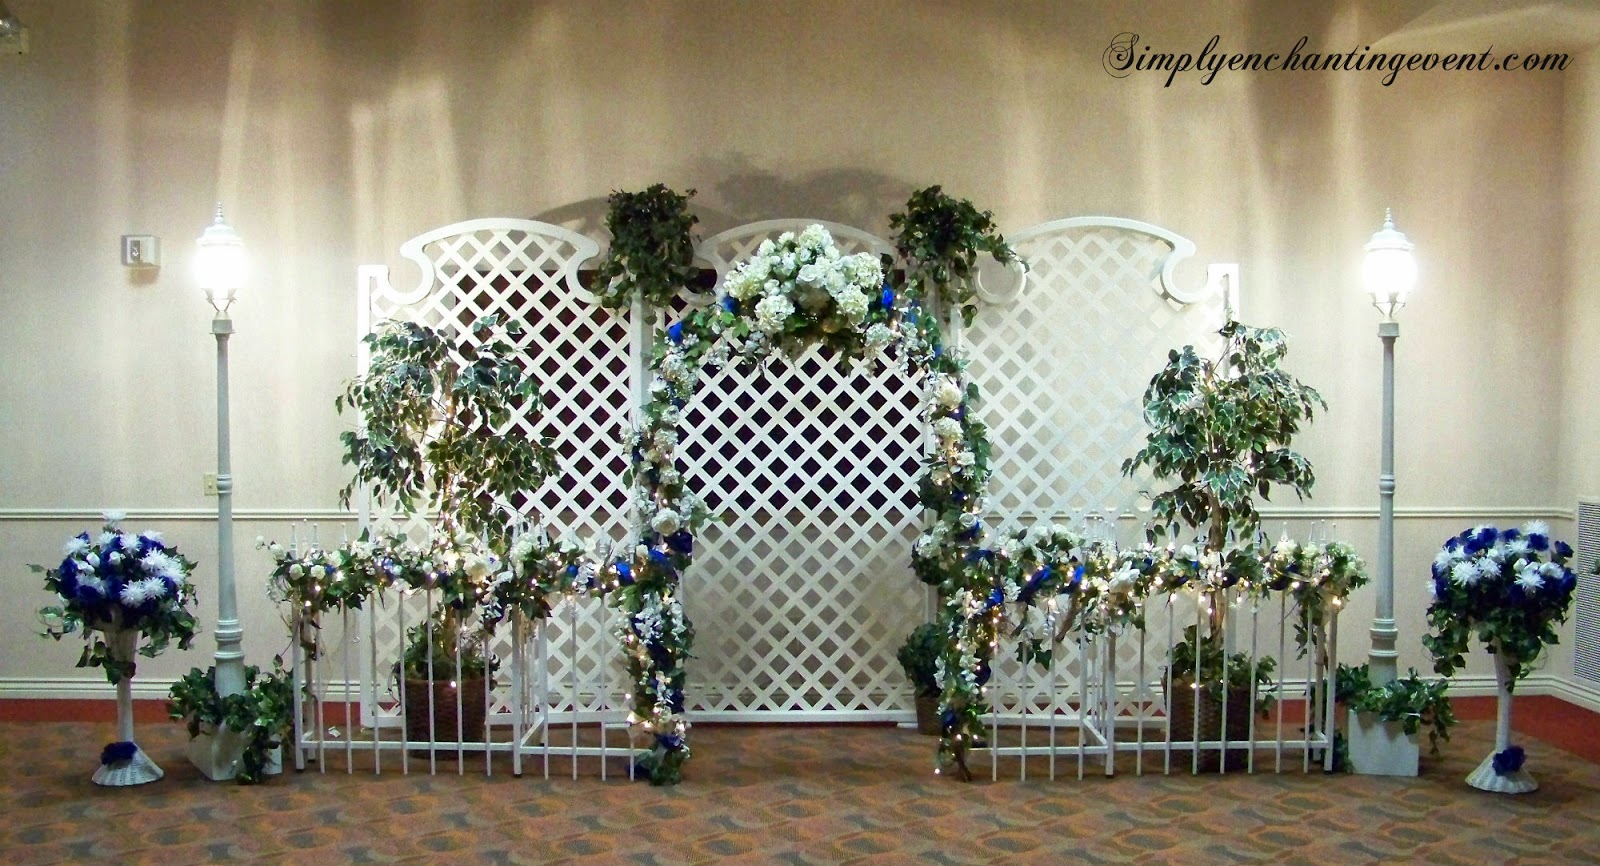 Simply enchanting event sapphire blue turquoise wedding for Decorating a trellis for a wedding